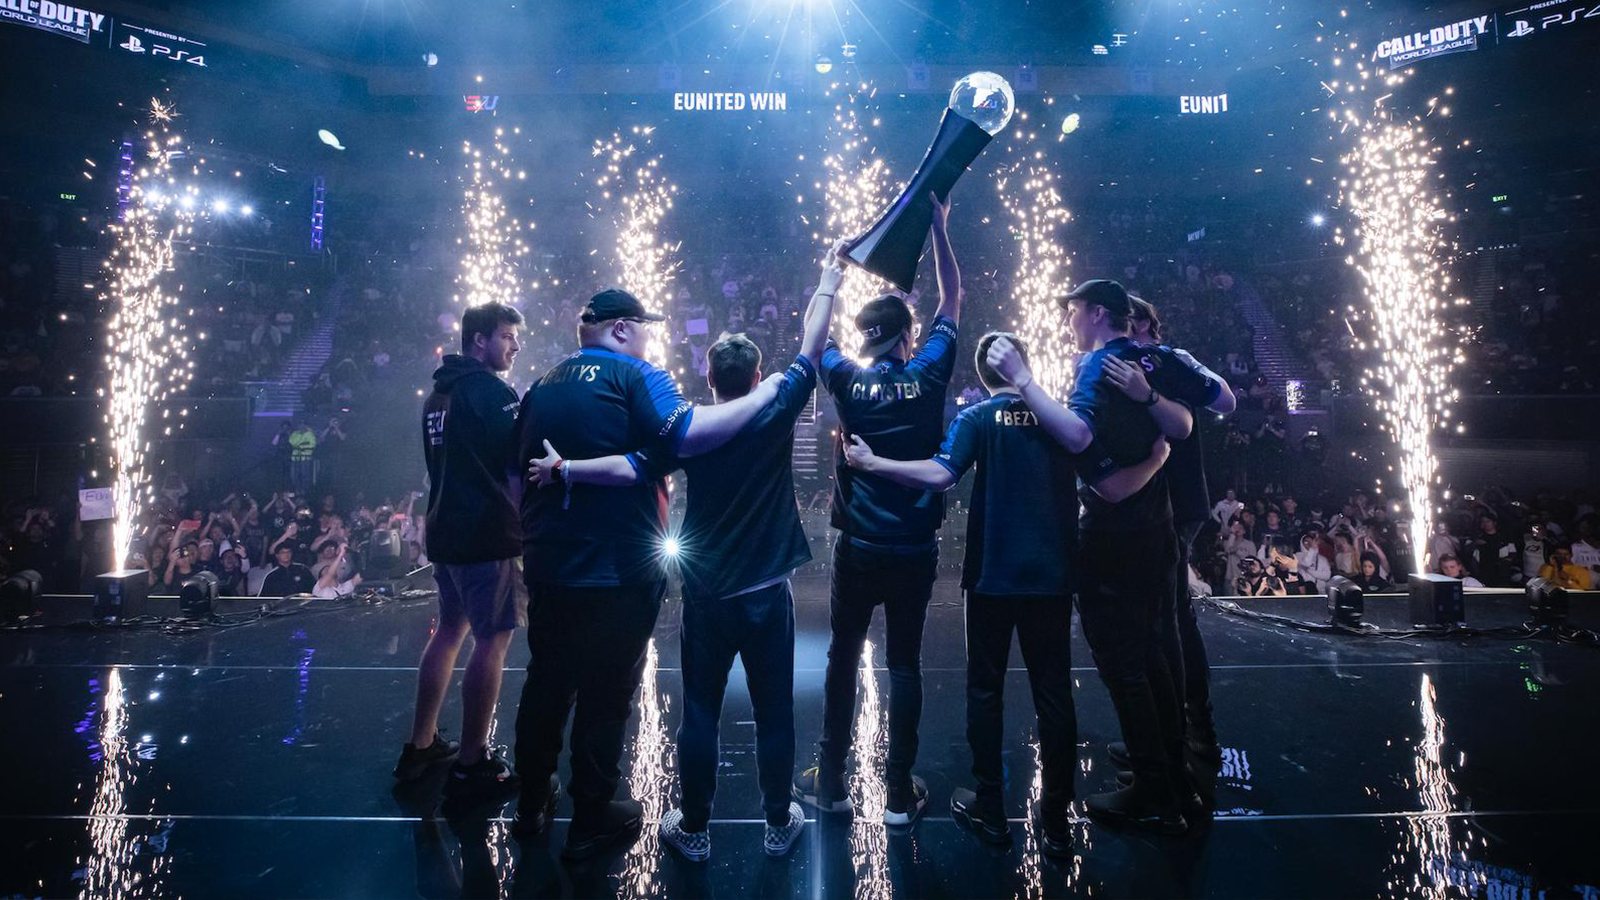 eUnited celebrating at 2019 CoD Champs